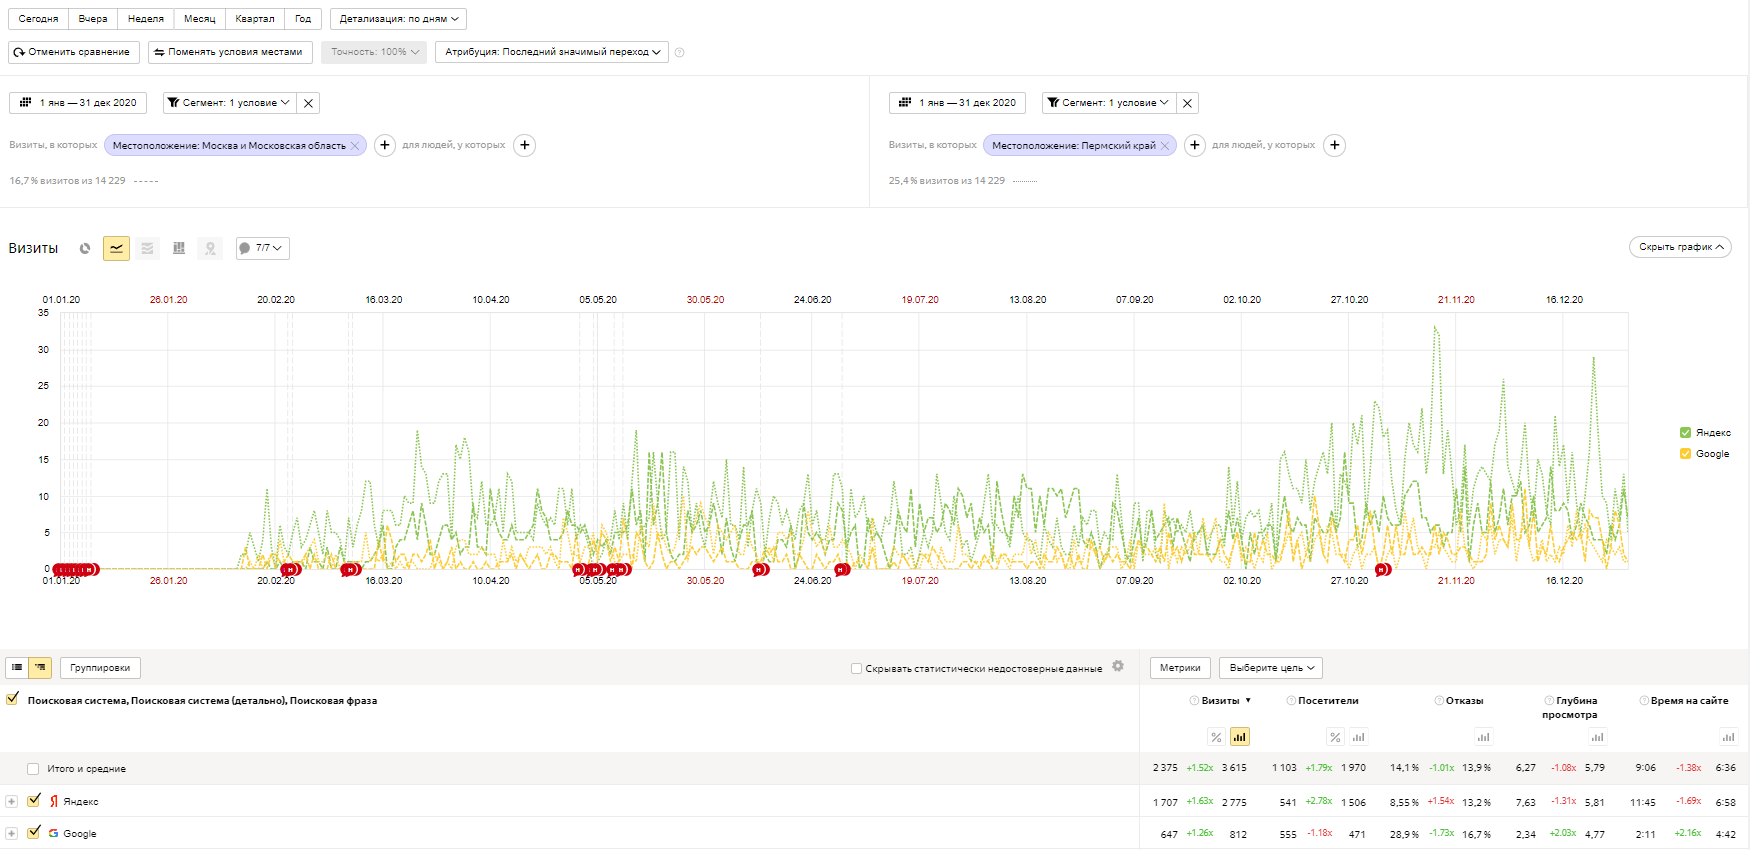 bots_sources_searchengines_moscow_vs_perm.png